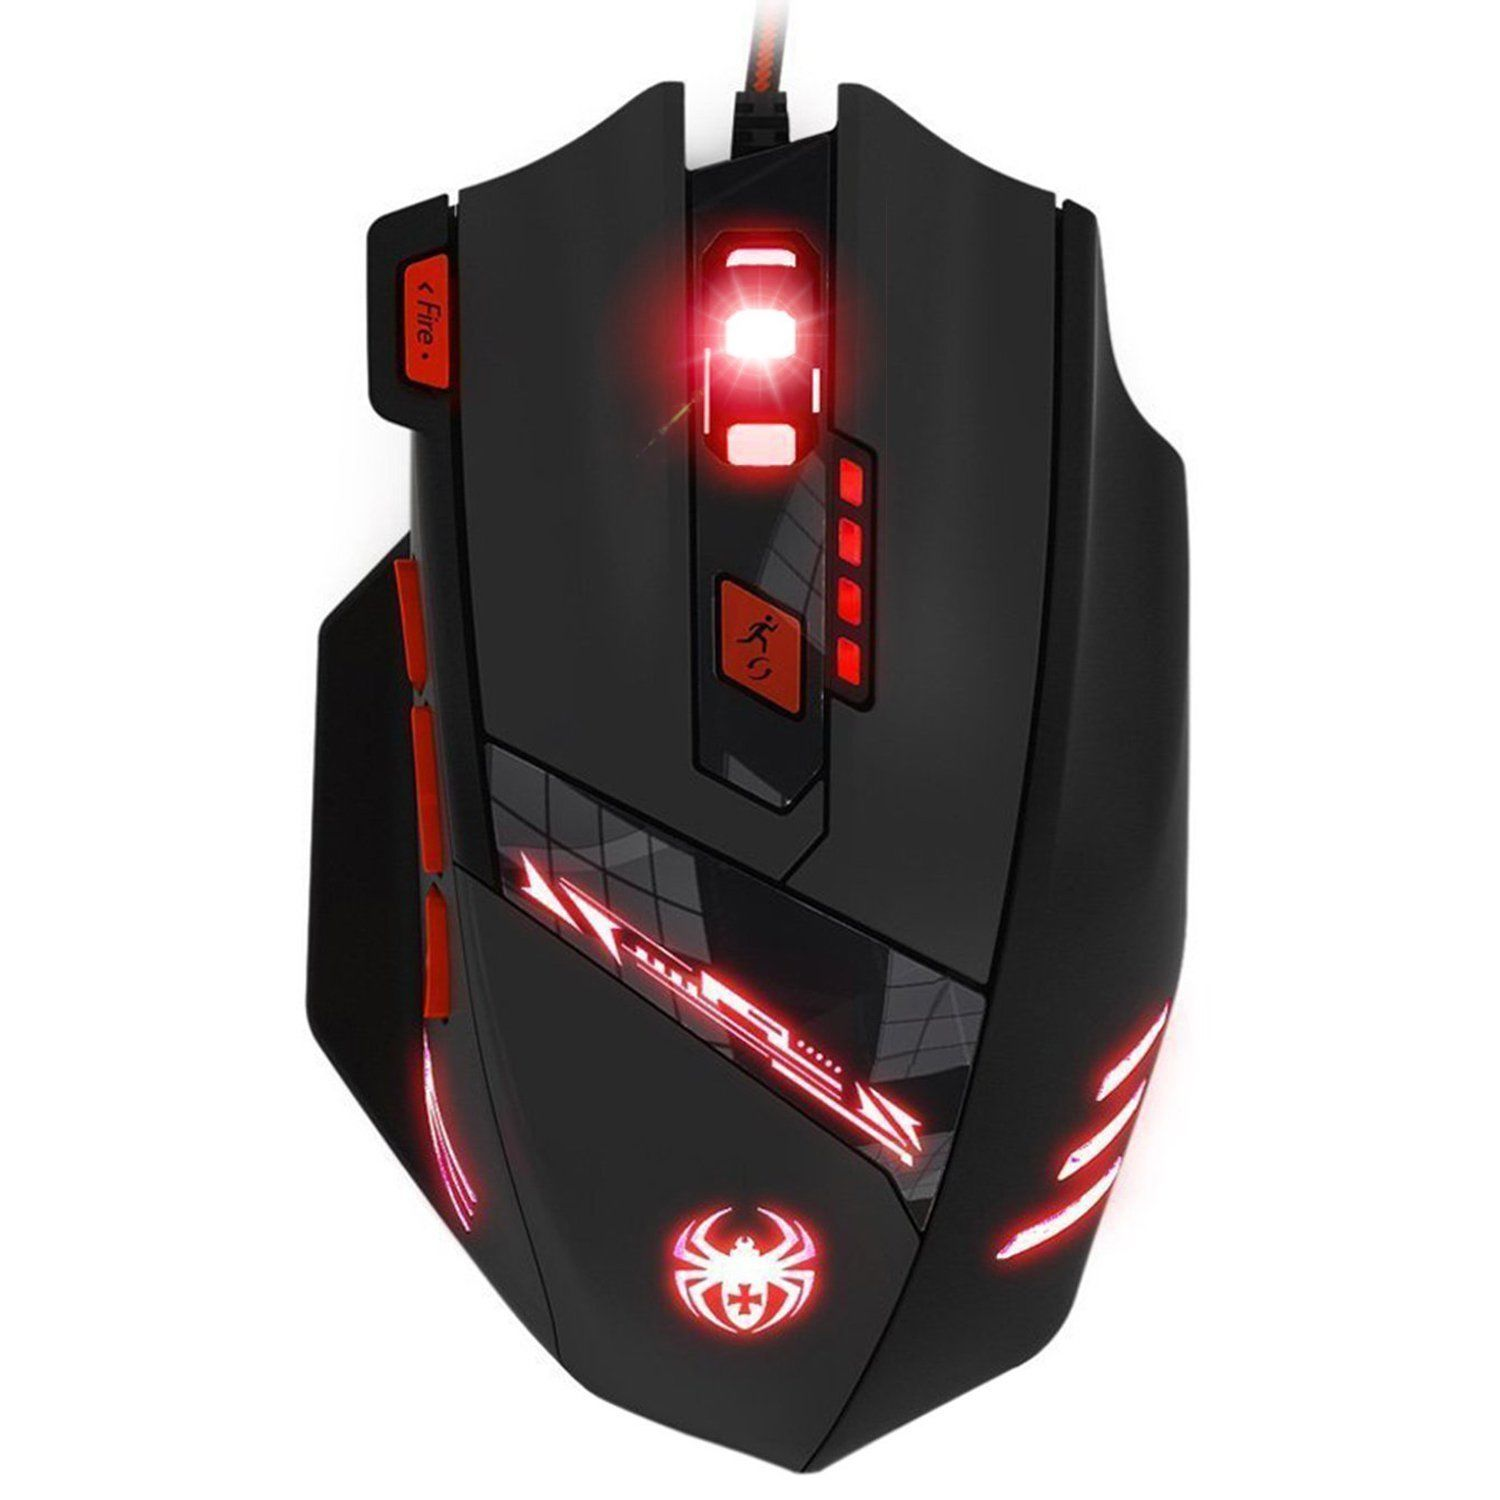 Mouse gaming kingtop